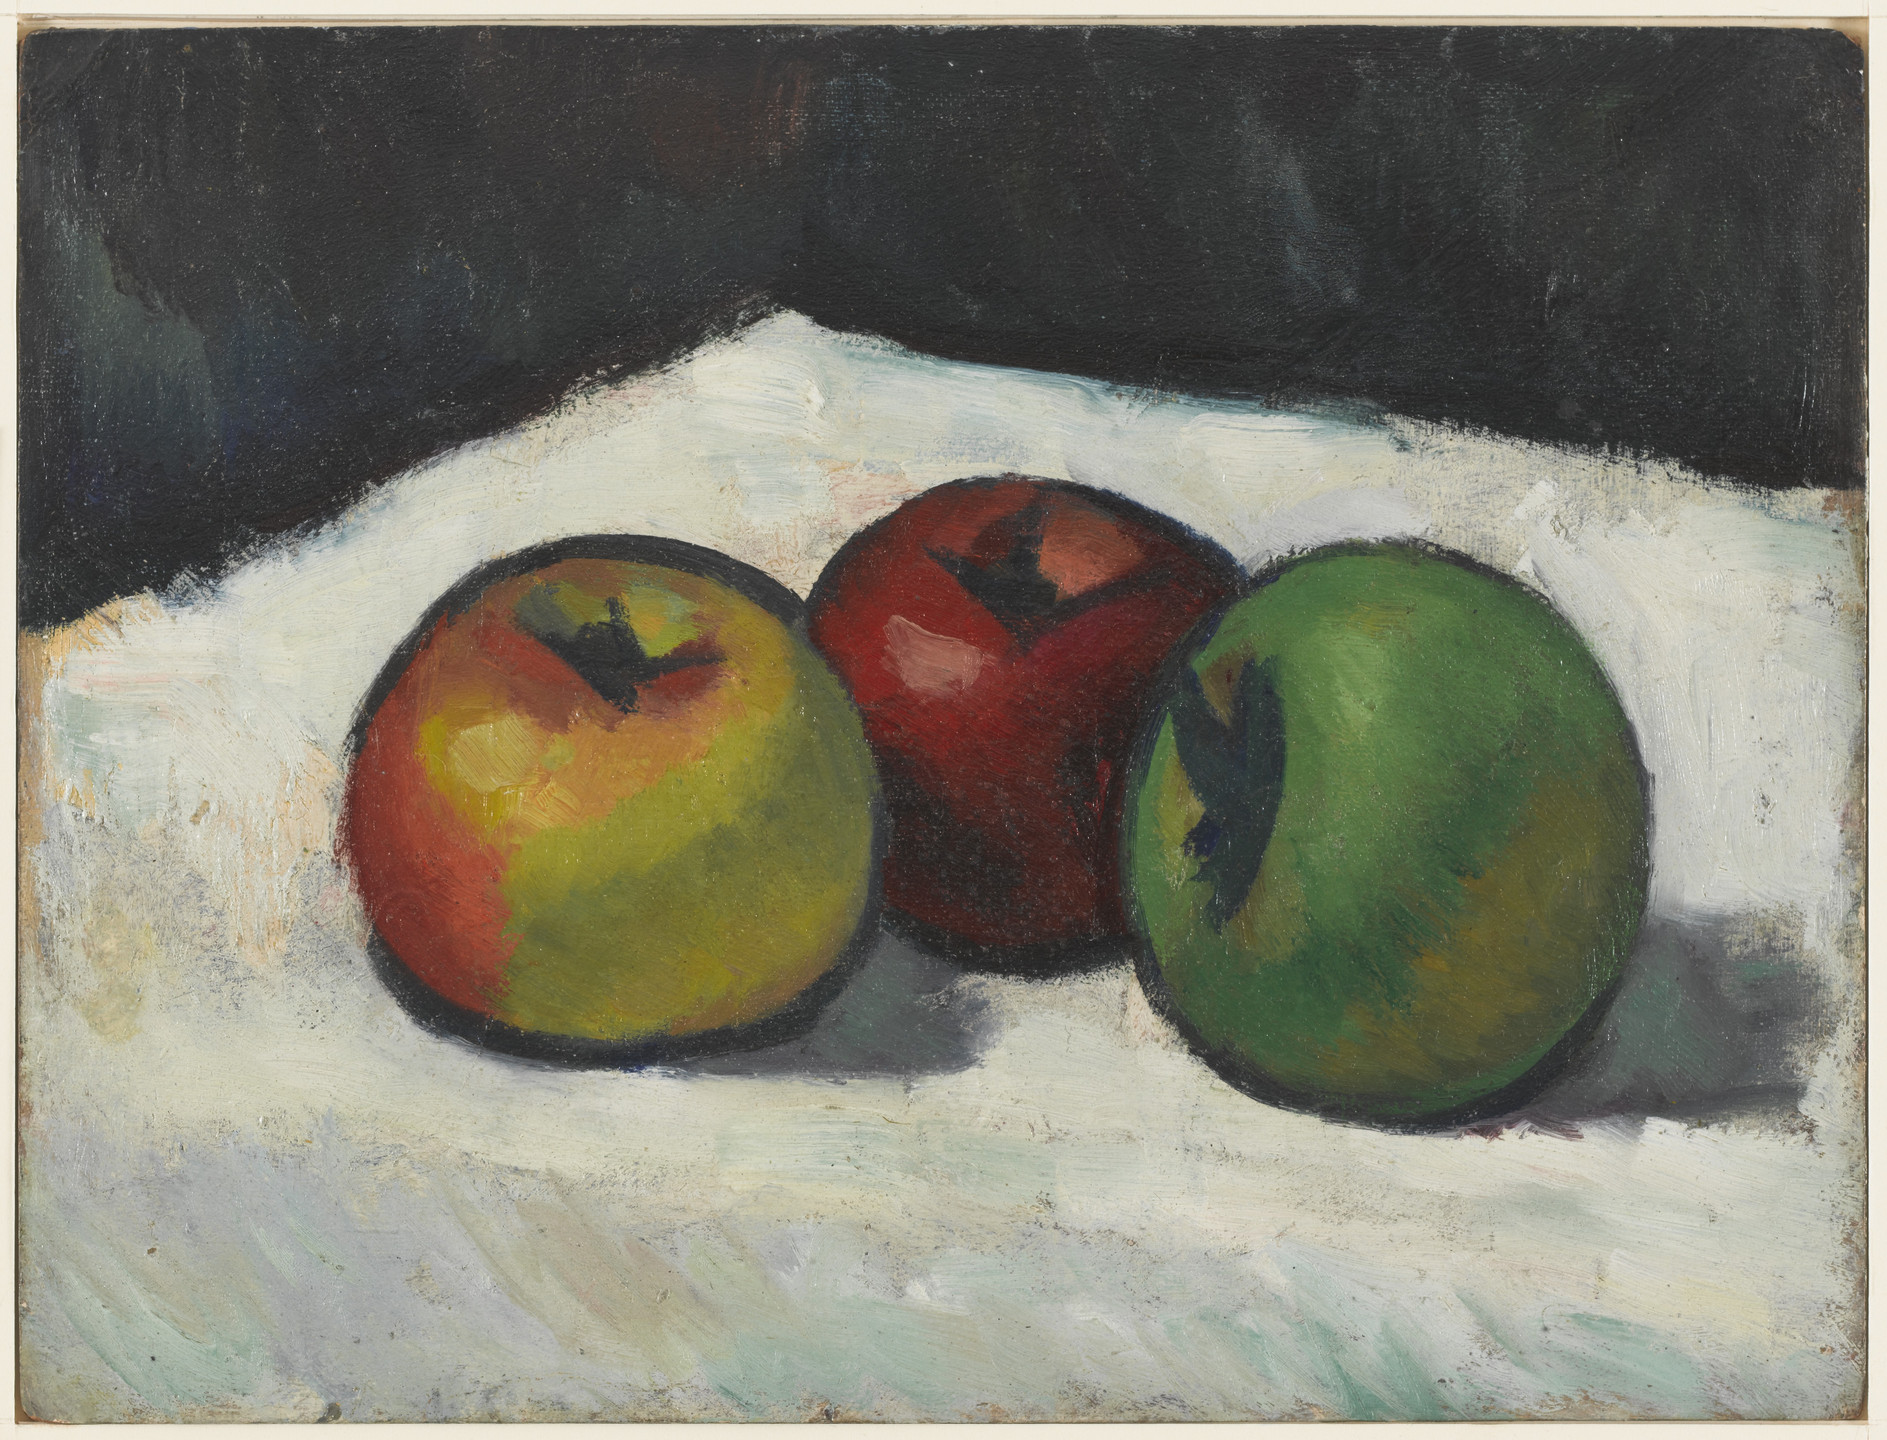 Morgan Russell. Three Apples. (1910)